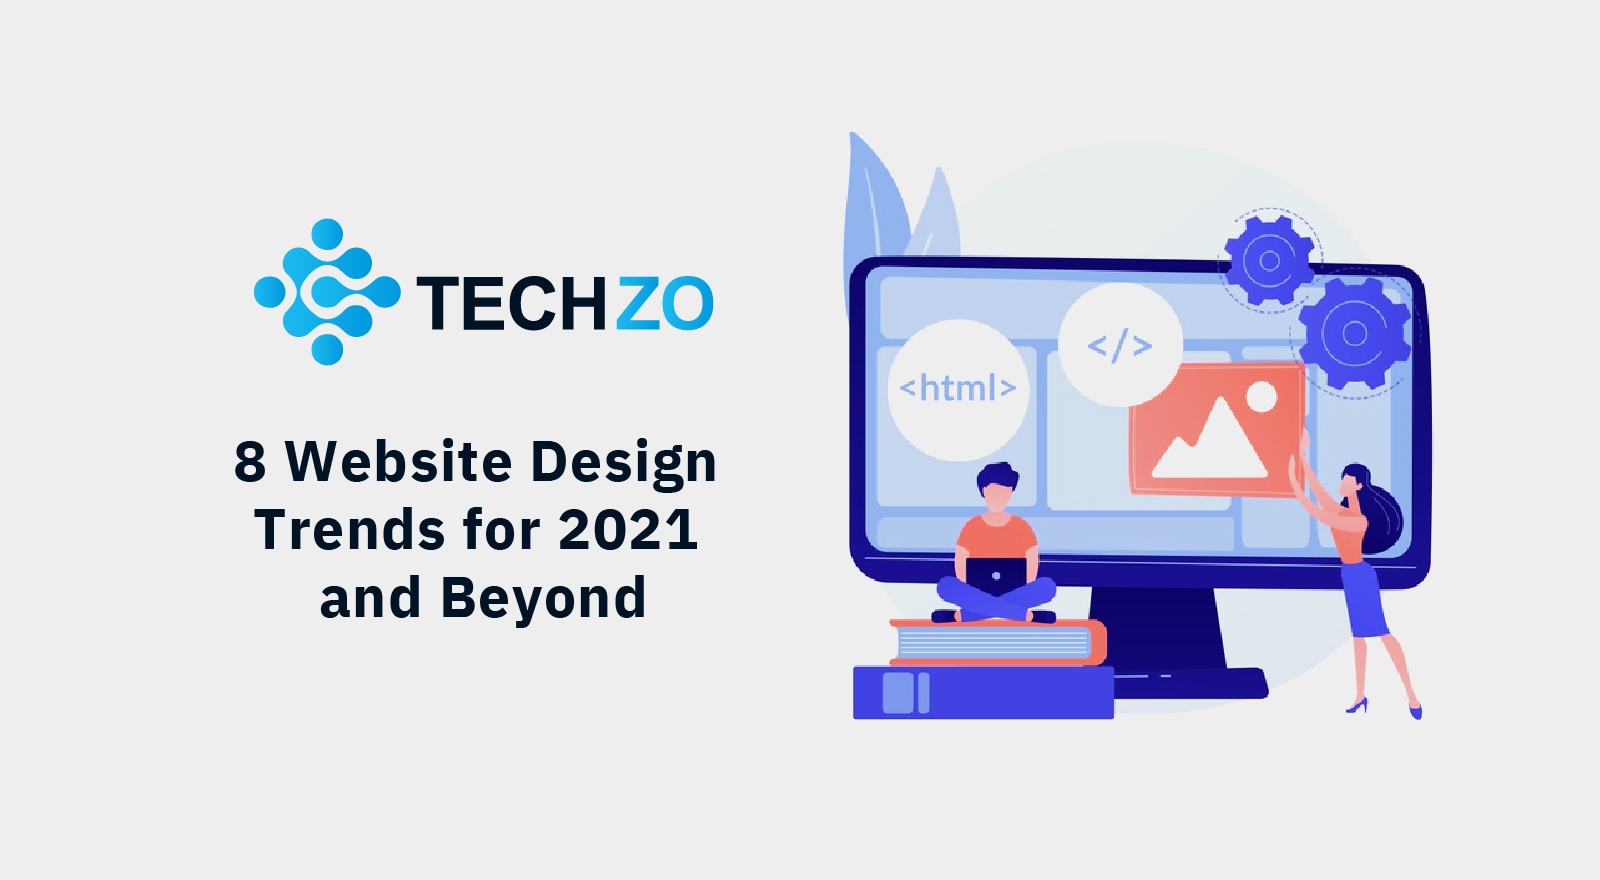 8 Website Design Trends for 2021 and Beyond